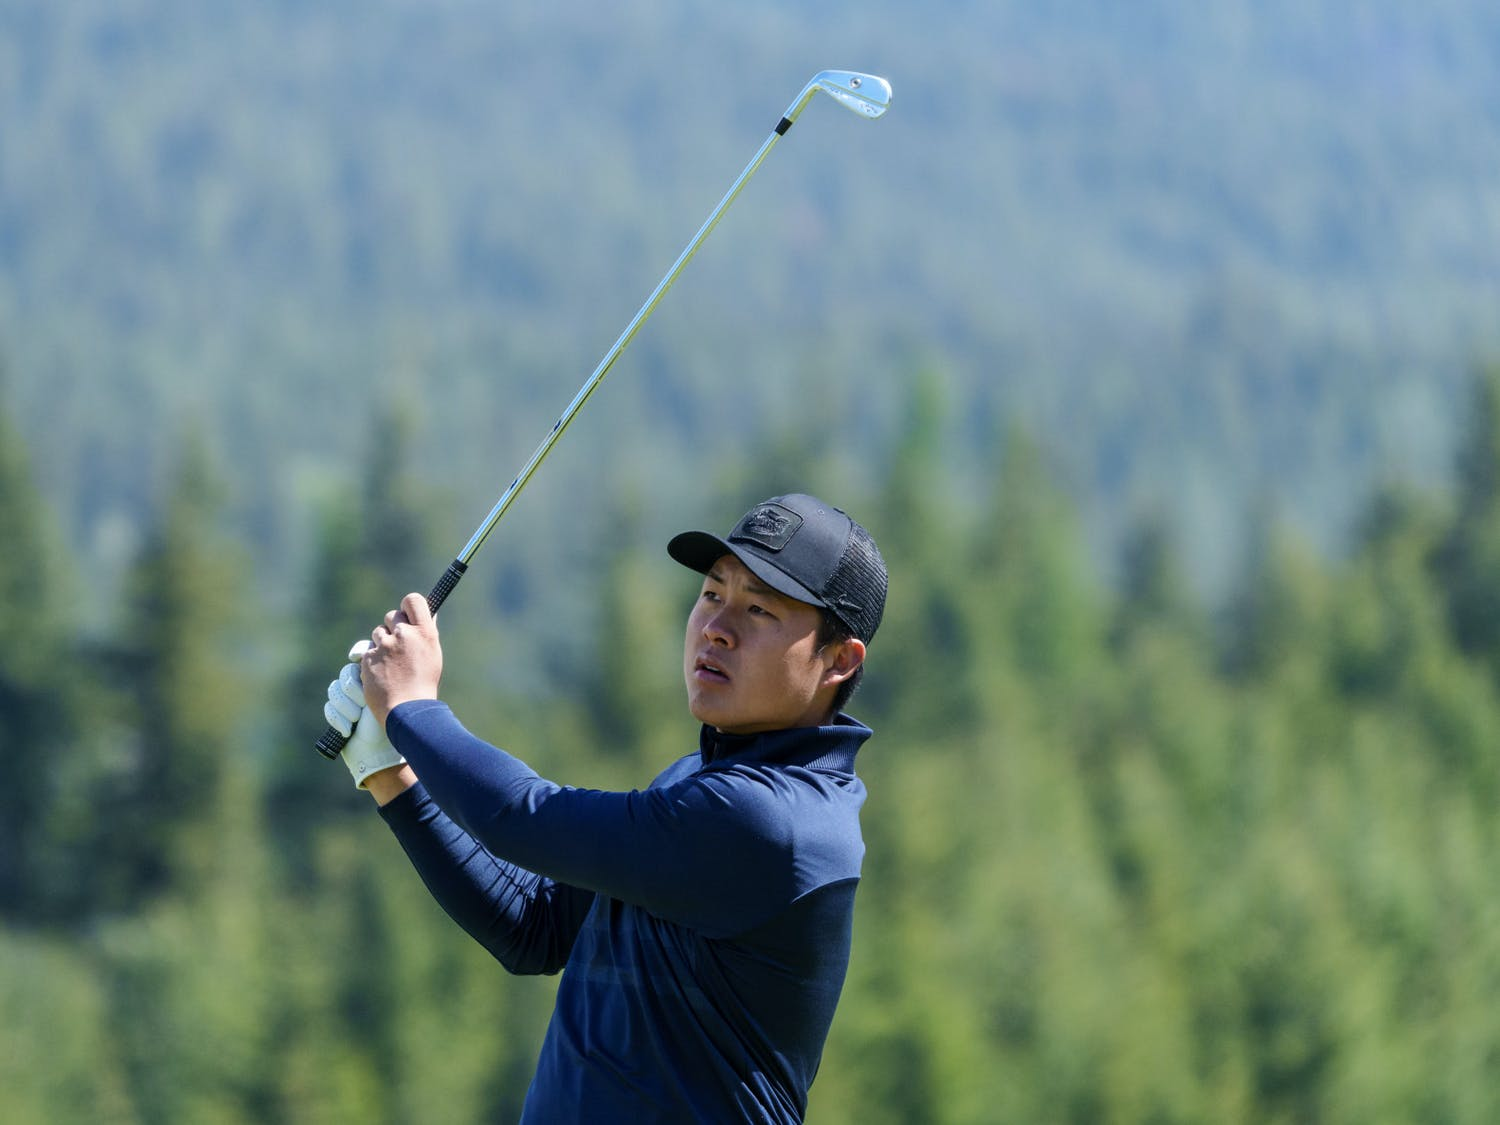 Florida's Yuxin Lin of the Florida men's golf team competes in the first round of the 2021 NCAA  Cle Elum Regional at Tumble Creek Golf Club in Cle Elum, Wash., on May 19, 2021. (Photography by Stephen Brashear/Red Box Pictures)